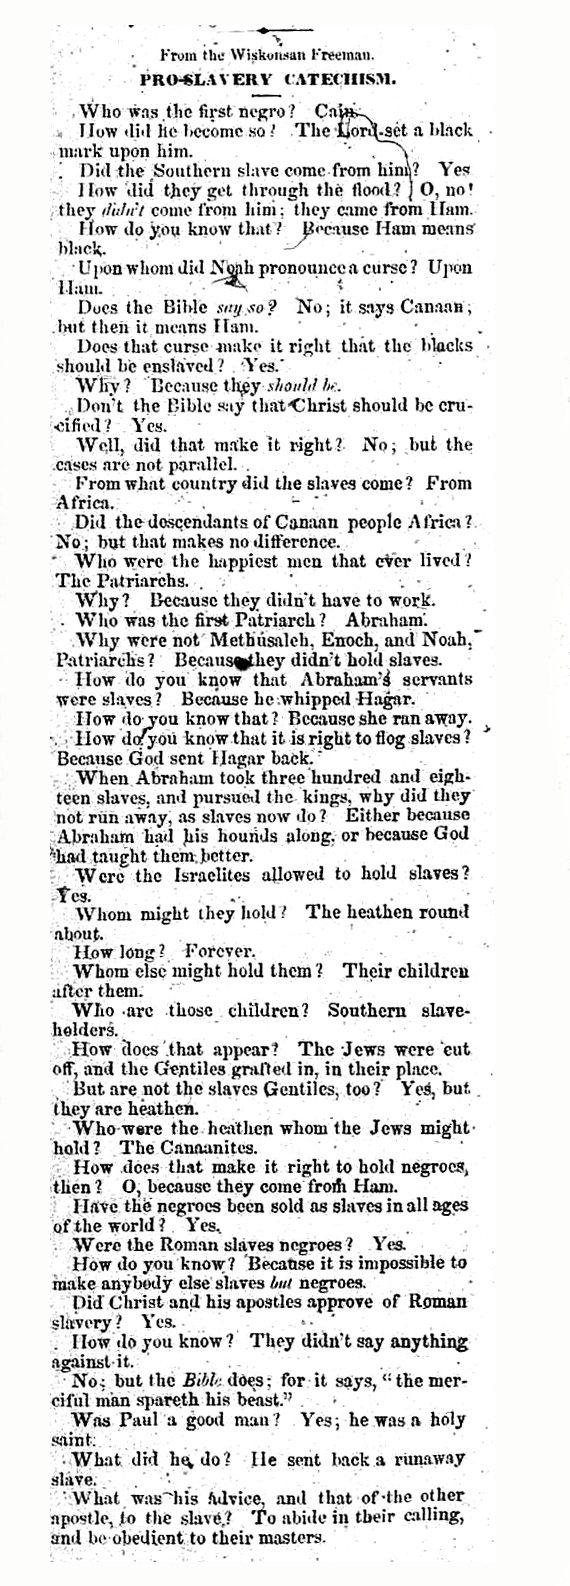 A Pro-Slavery Catechism in The National Era - July 8, 1847